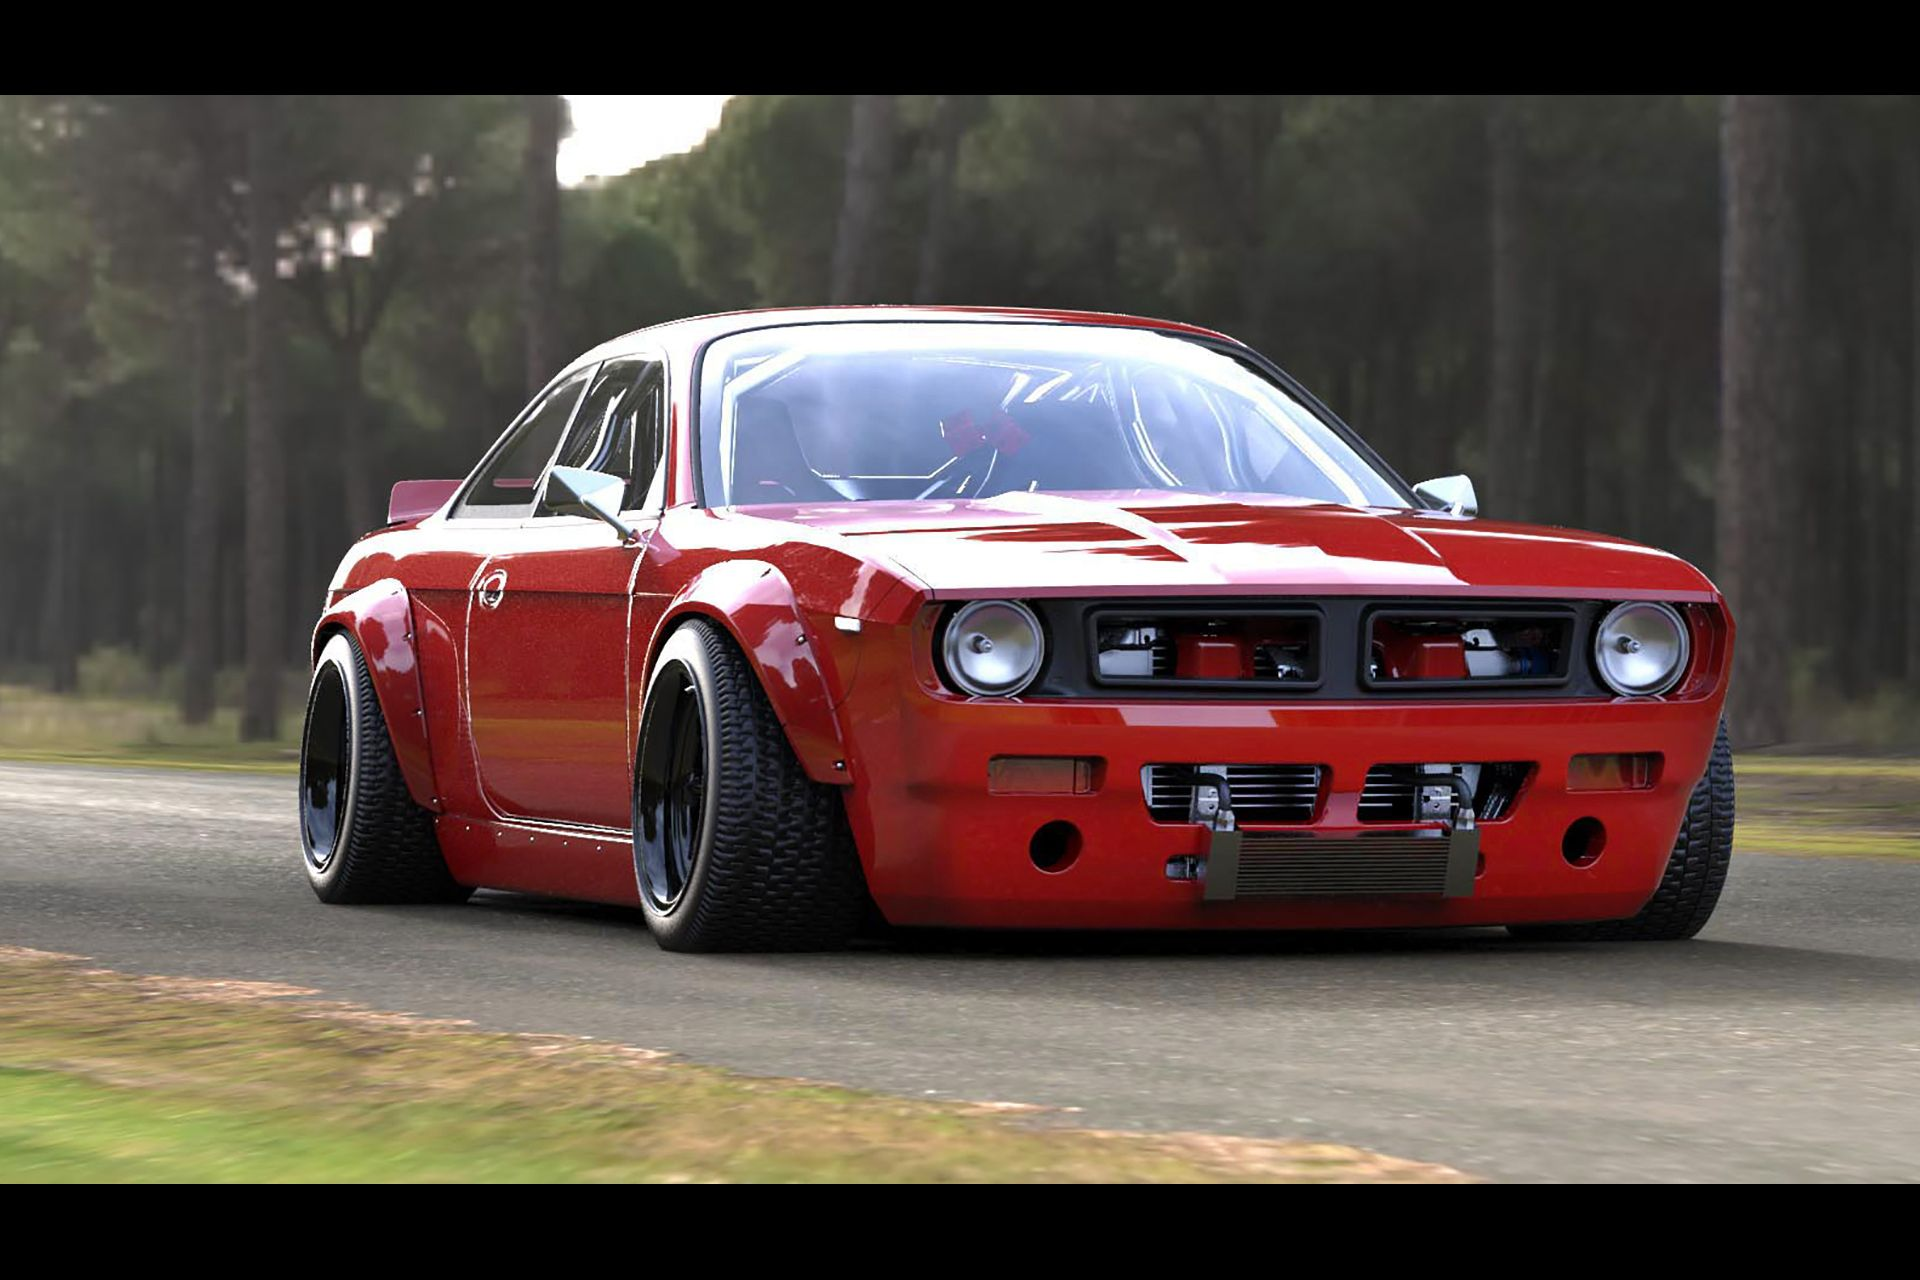 medium resolution of rocket bunny s14 v2 boss aero kit preorder sale zilvia net forums nissan 240sx silvia and z fairlady car forum